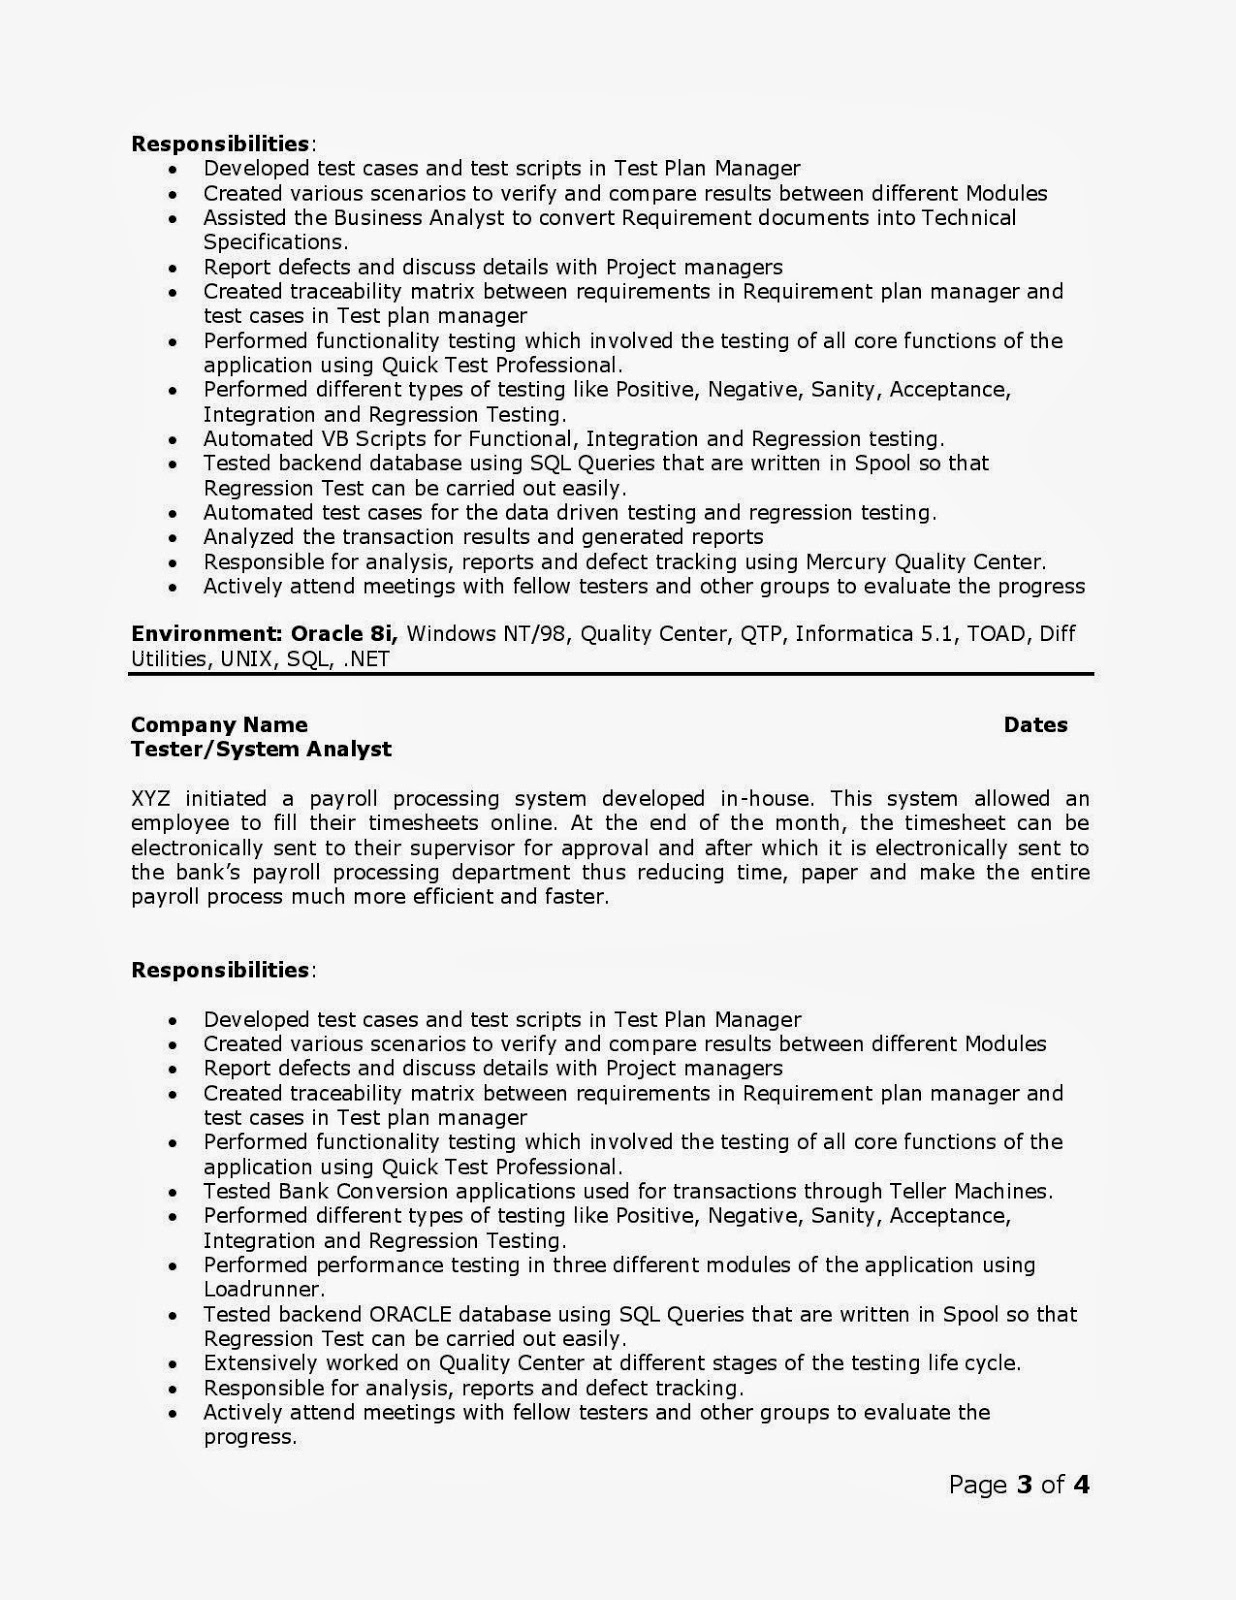 qa analyst sample resume 04052017